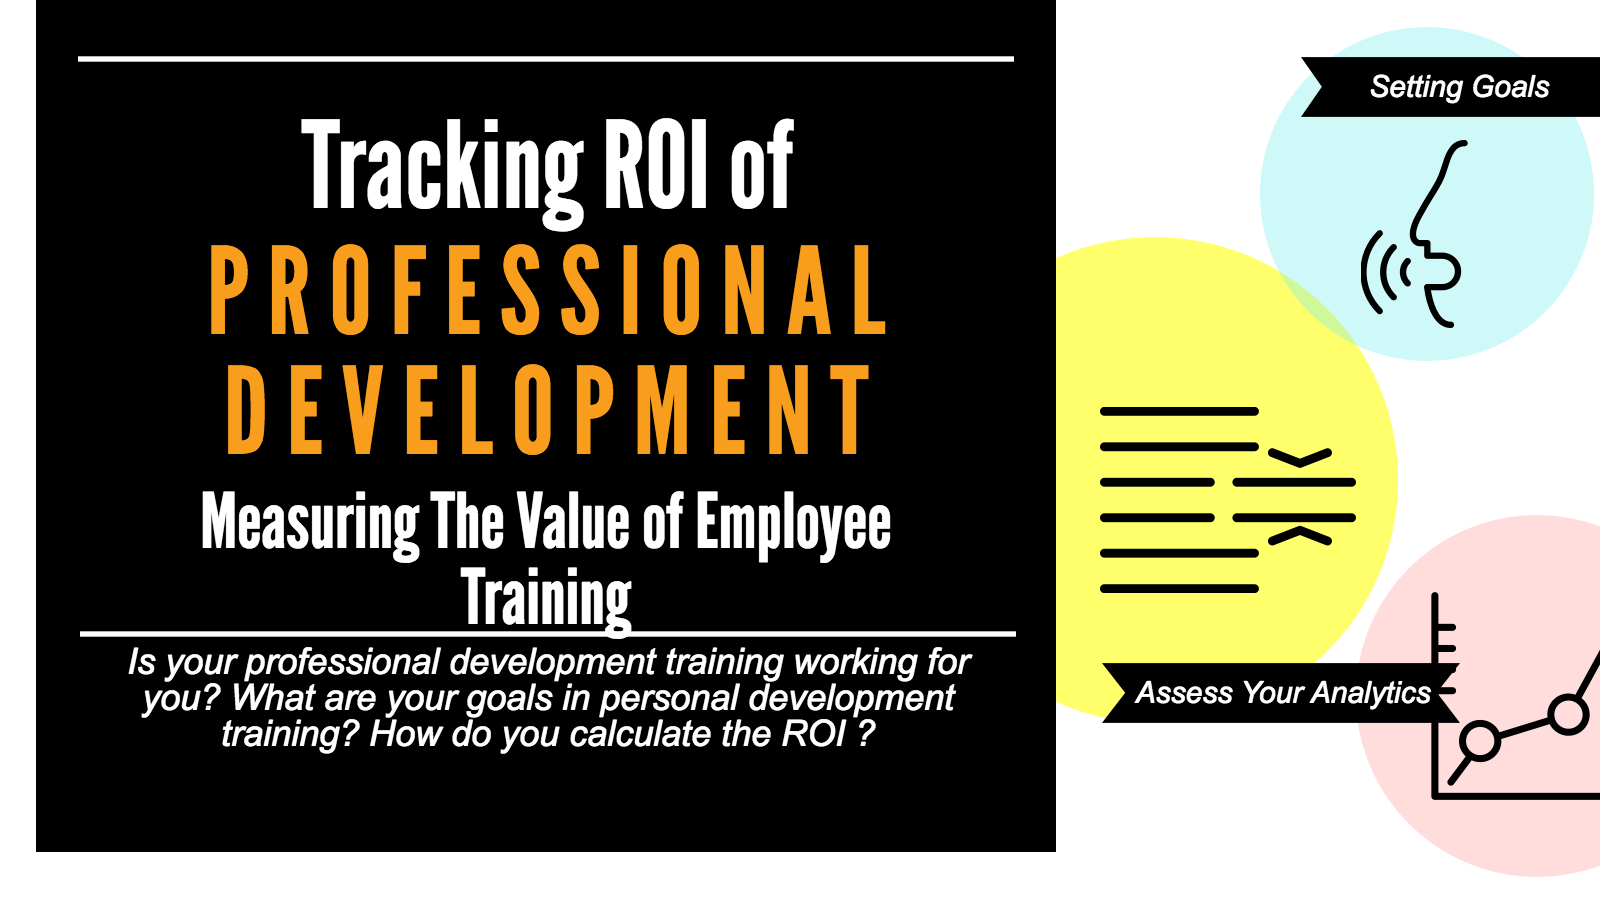 Track ROI of Professional Development in 4 Steps [infographic]